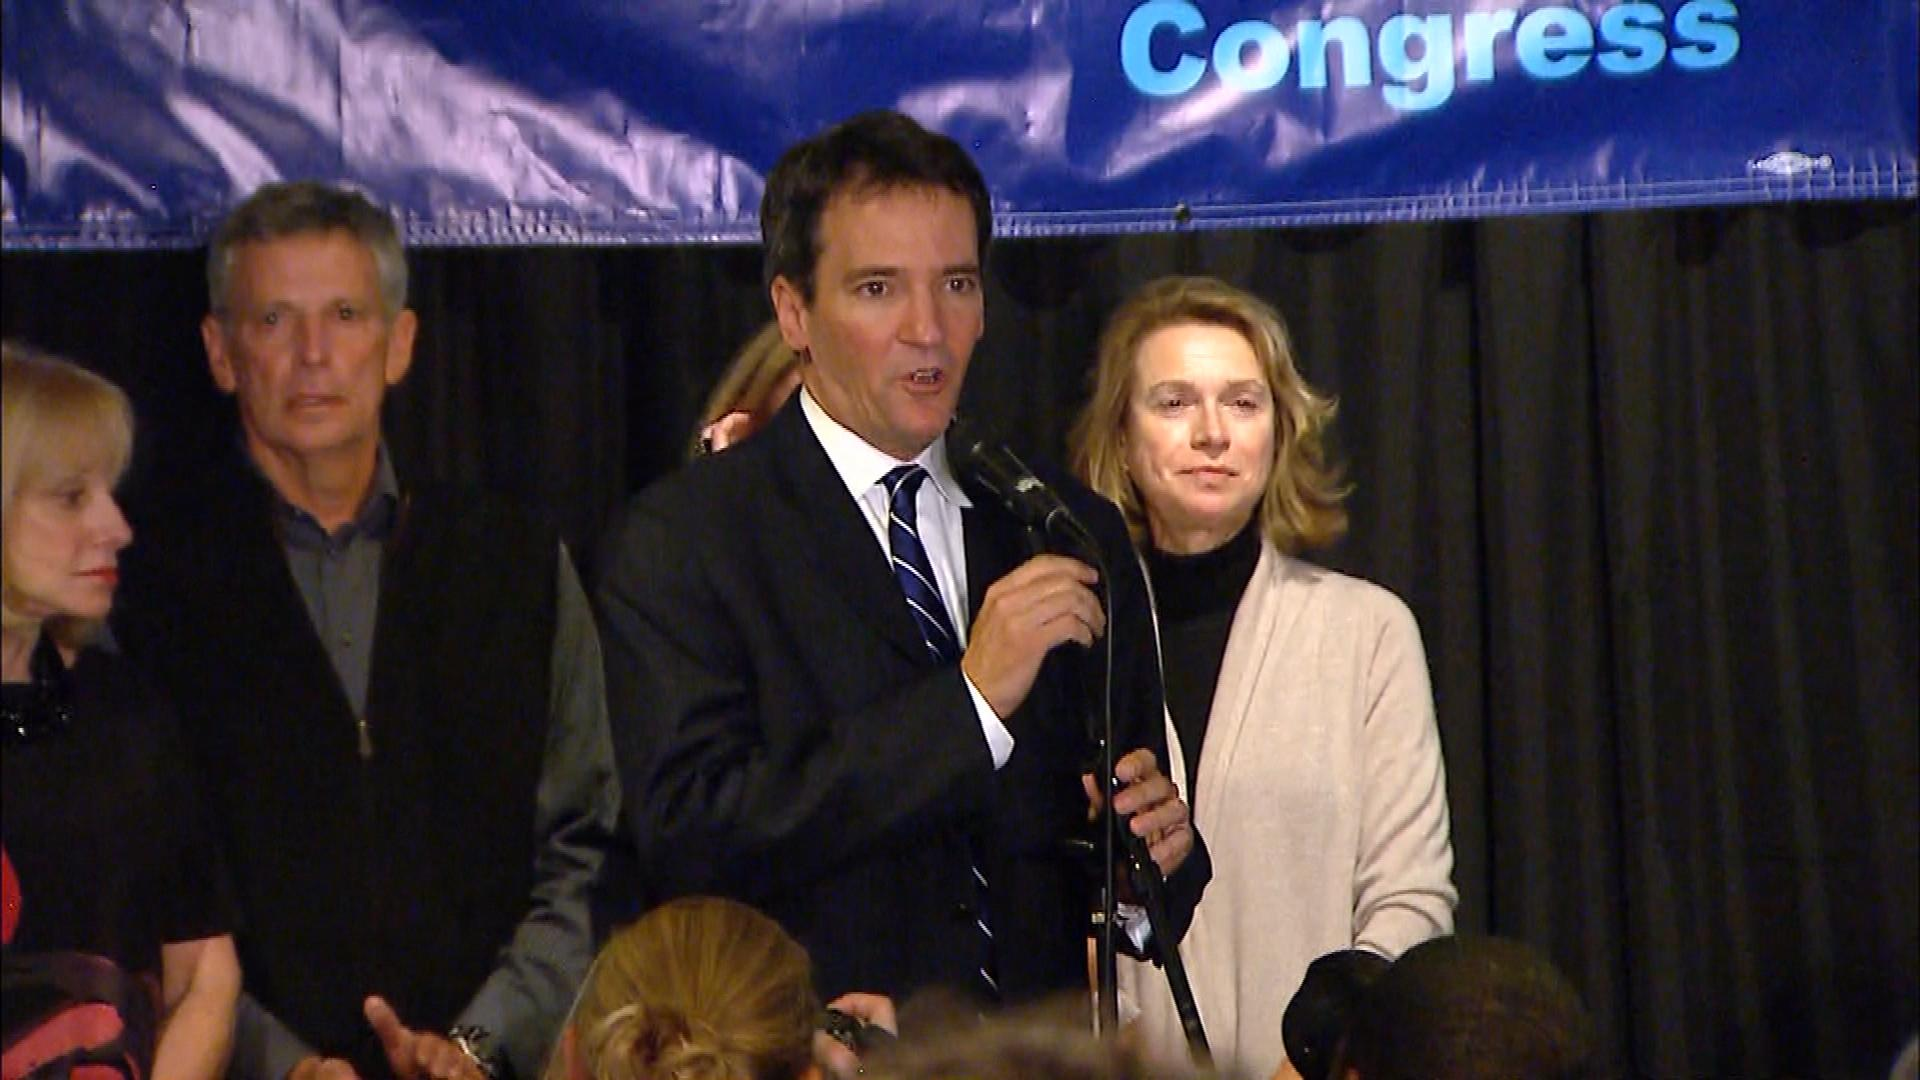 Andrew Romanoff concedes to Rep. Mike Coffman (credit: CBS)